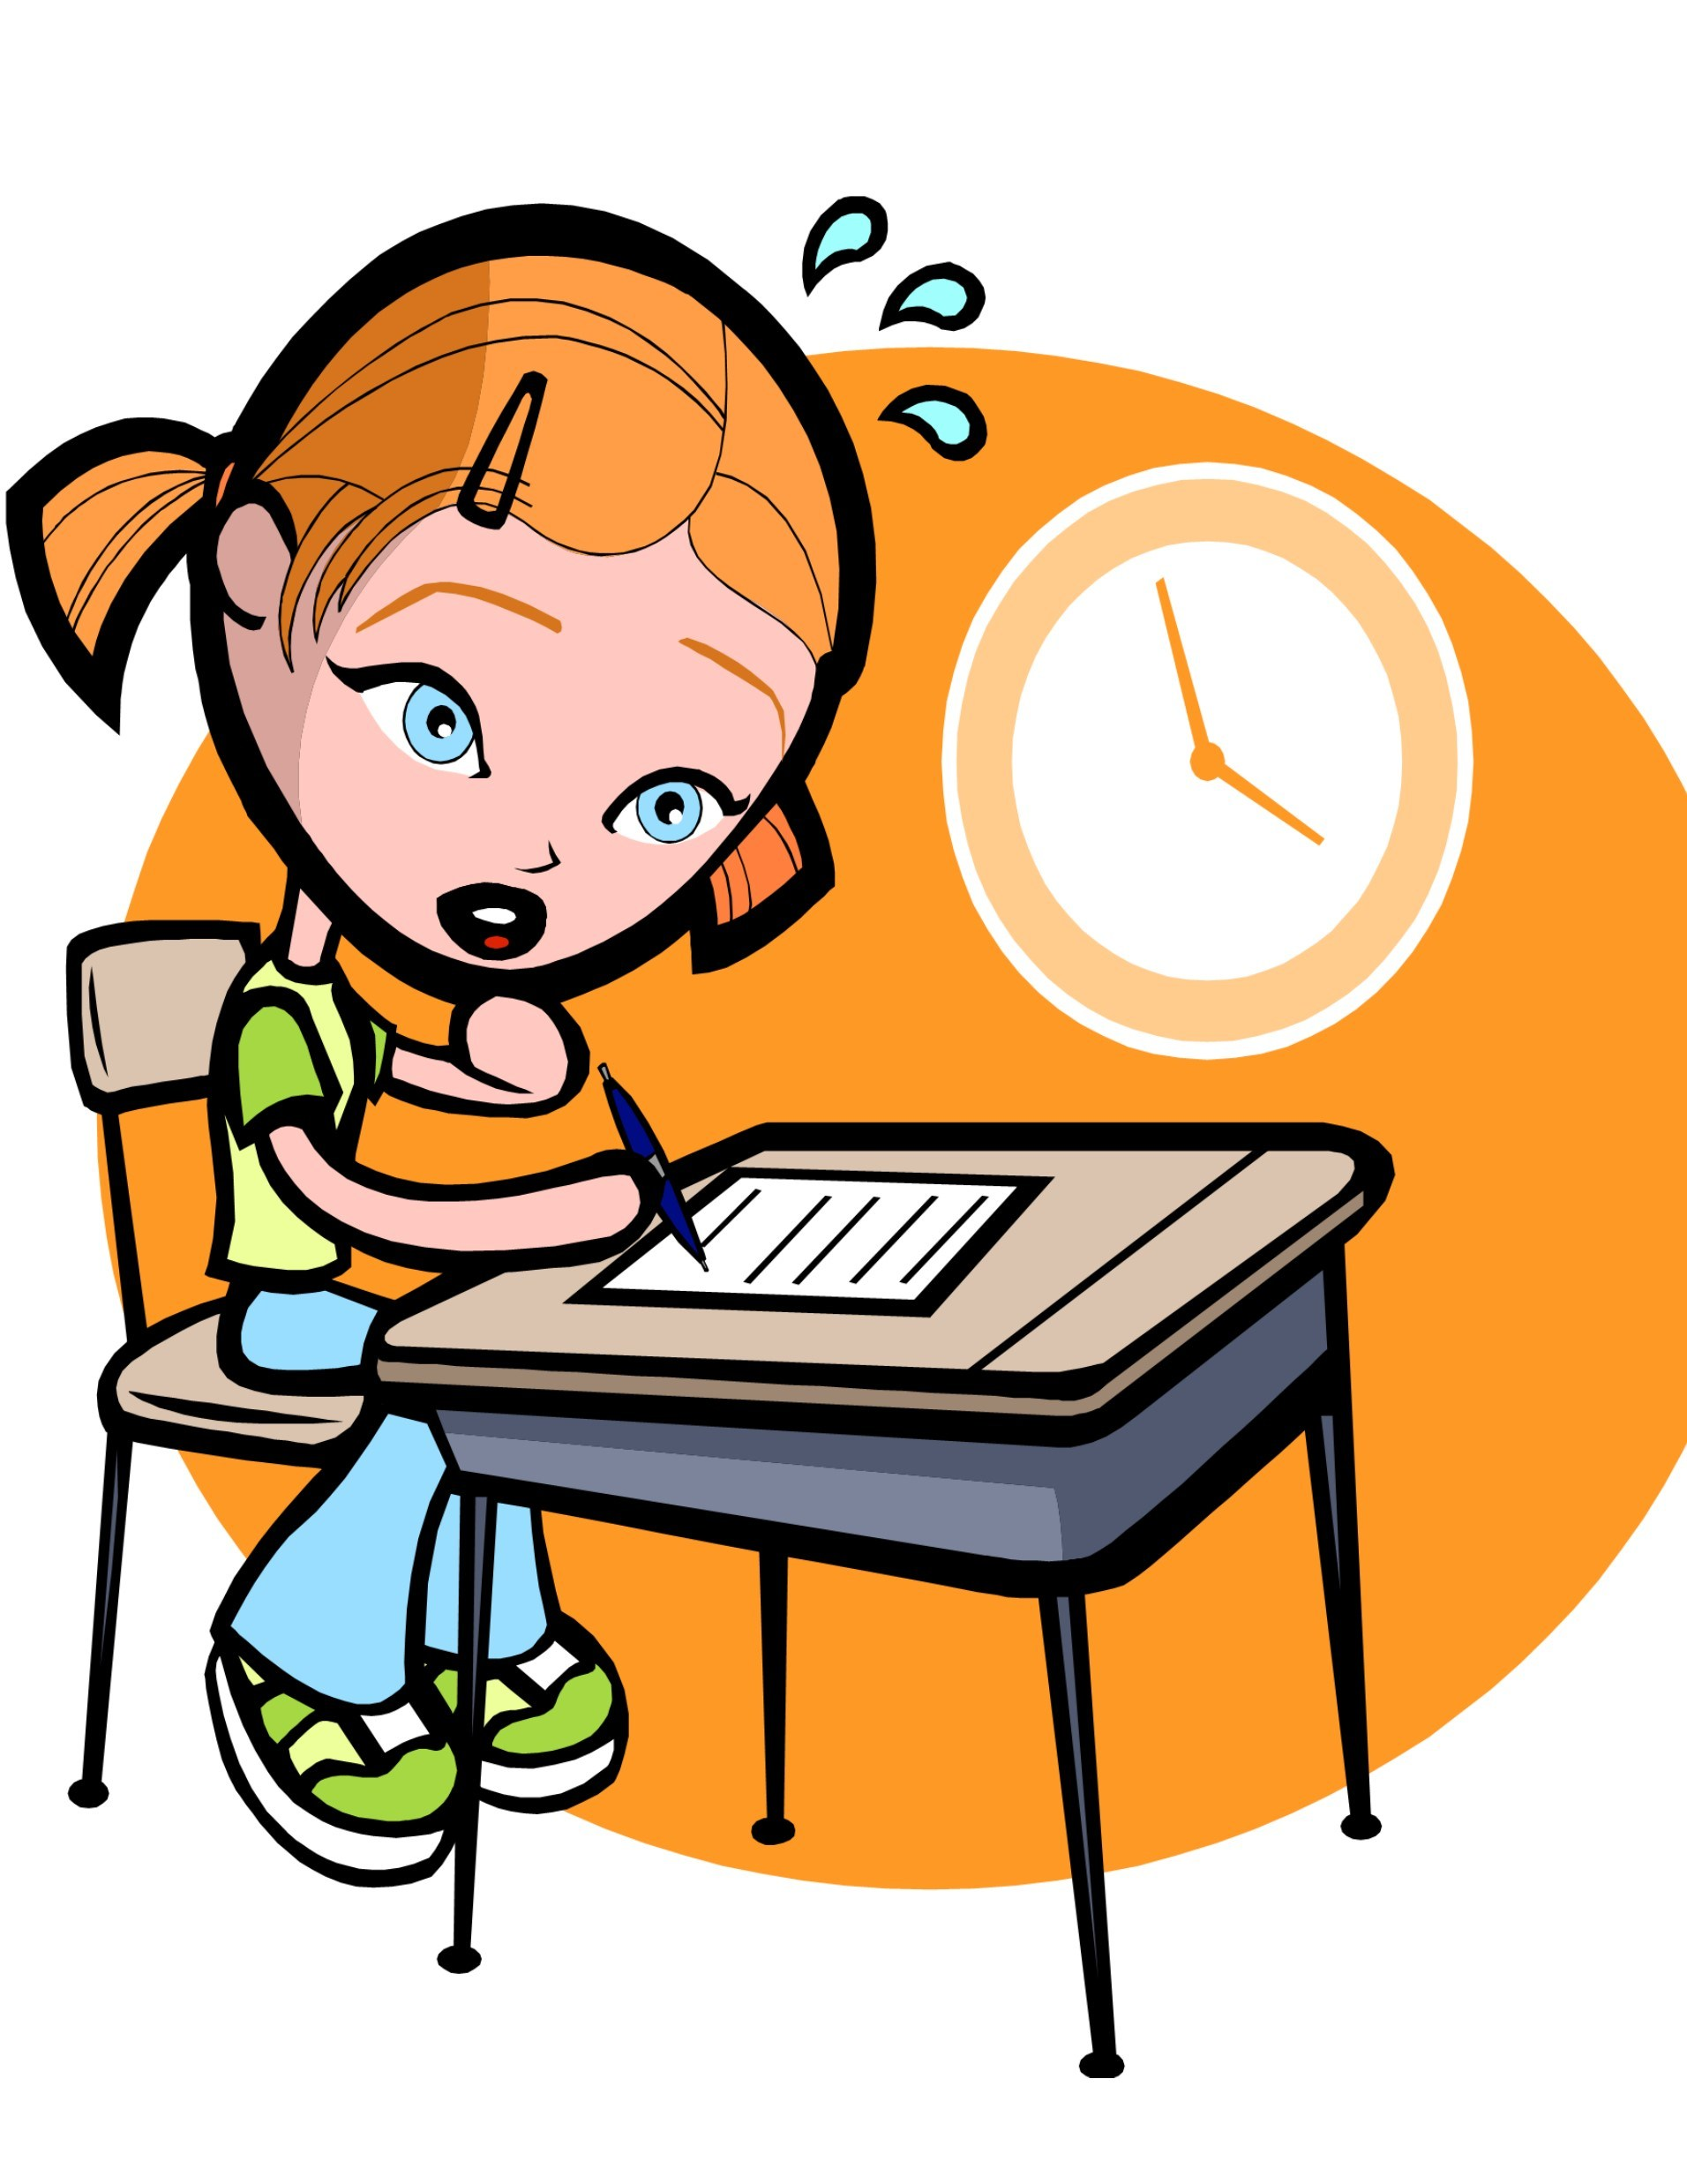 Test anxiety clipart 7 » Clipart Portal.